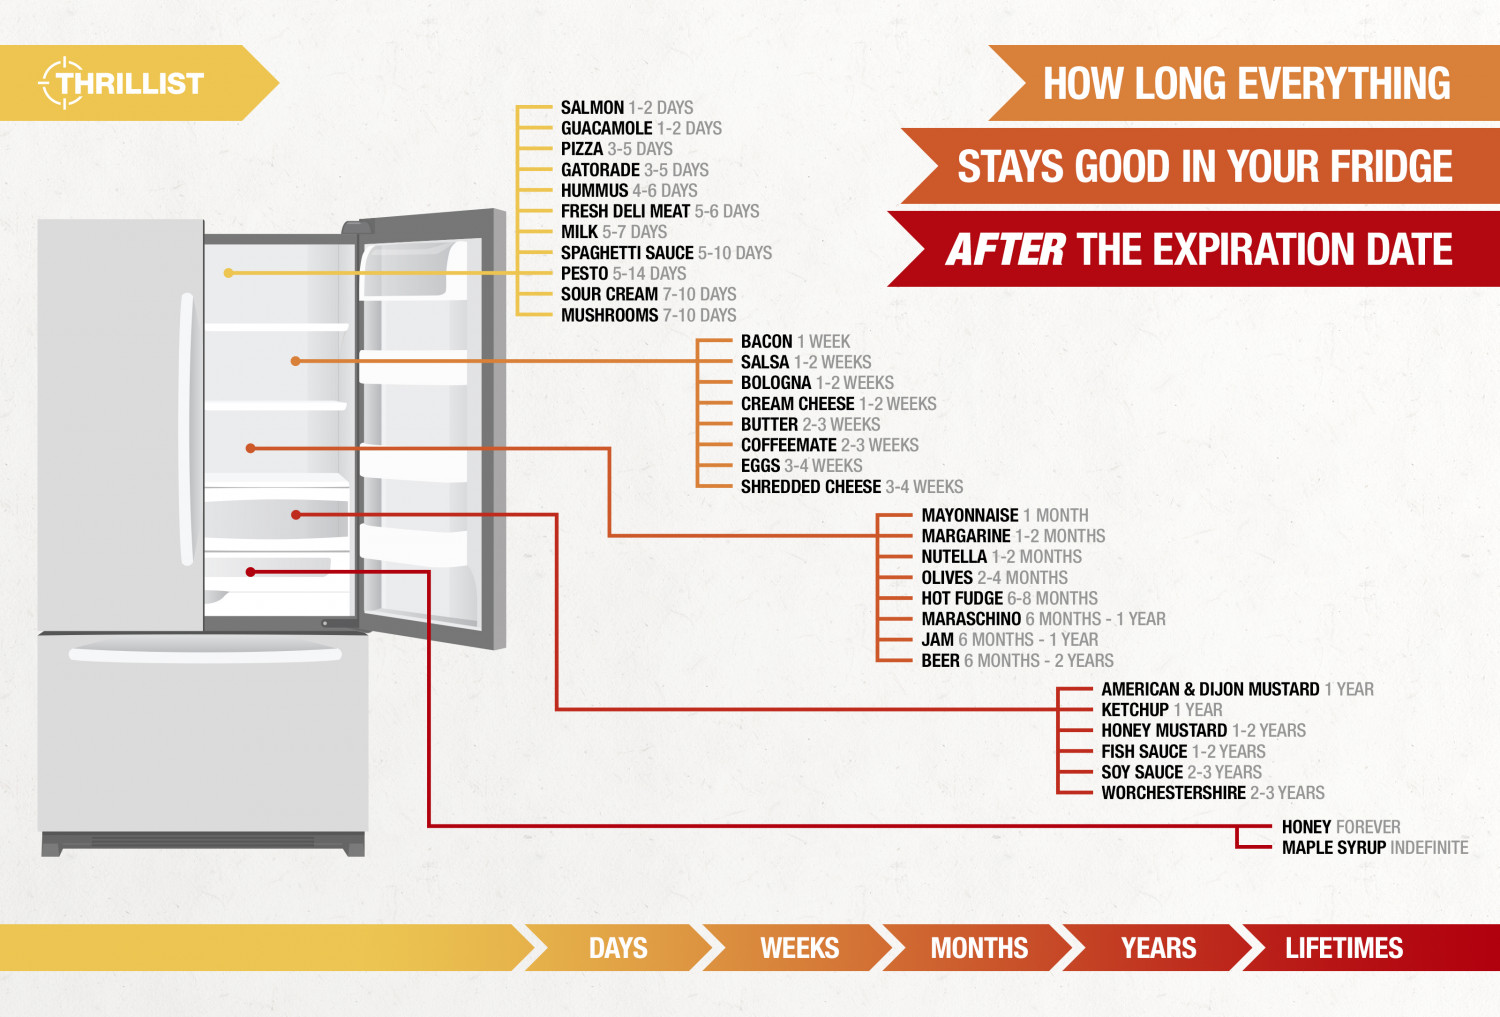 How long everything stays good in your fridge AFTER the expiration date Infographic